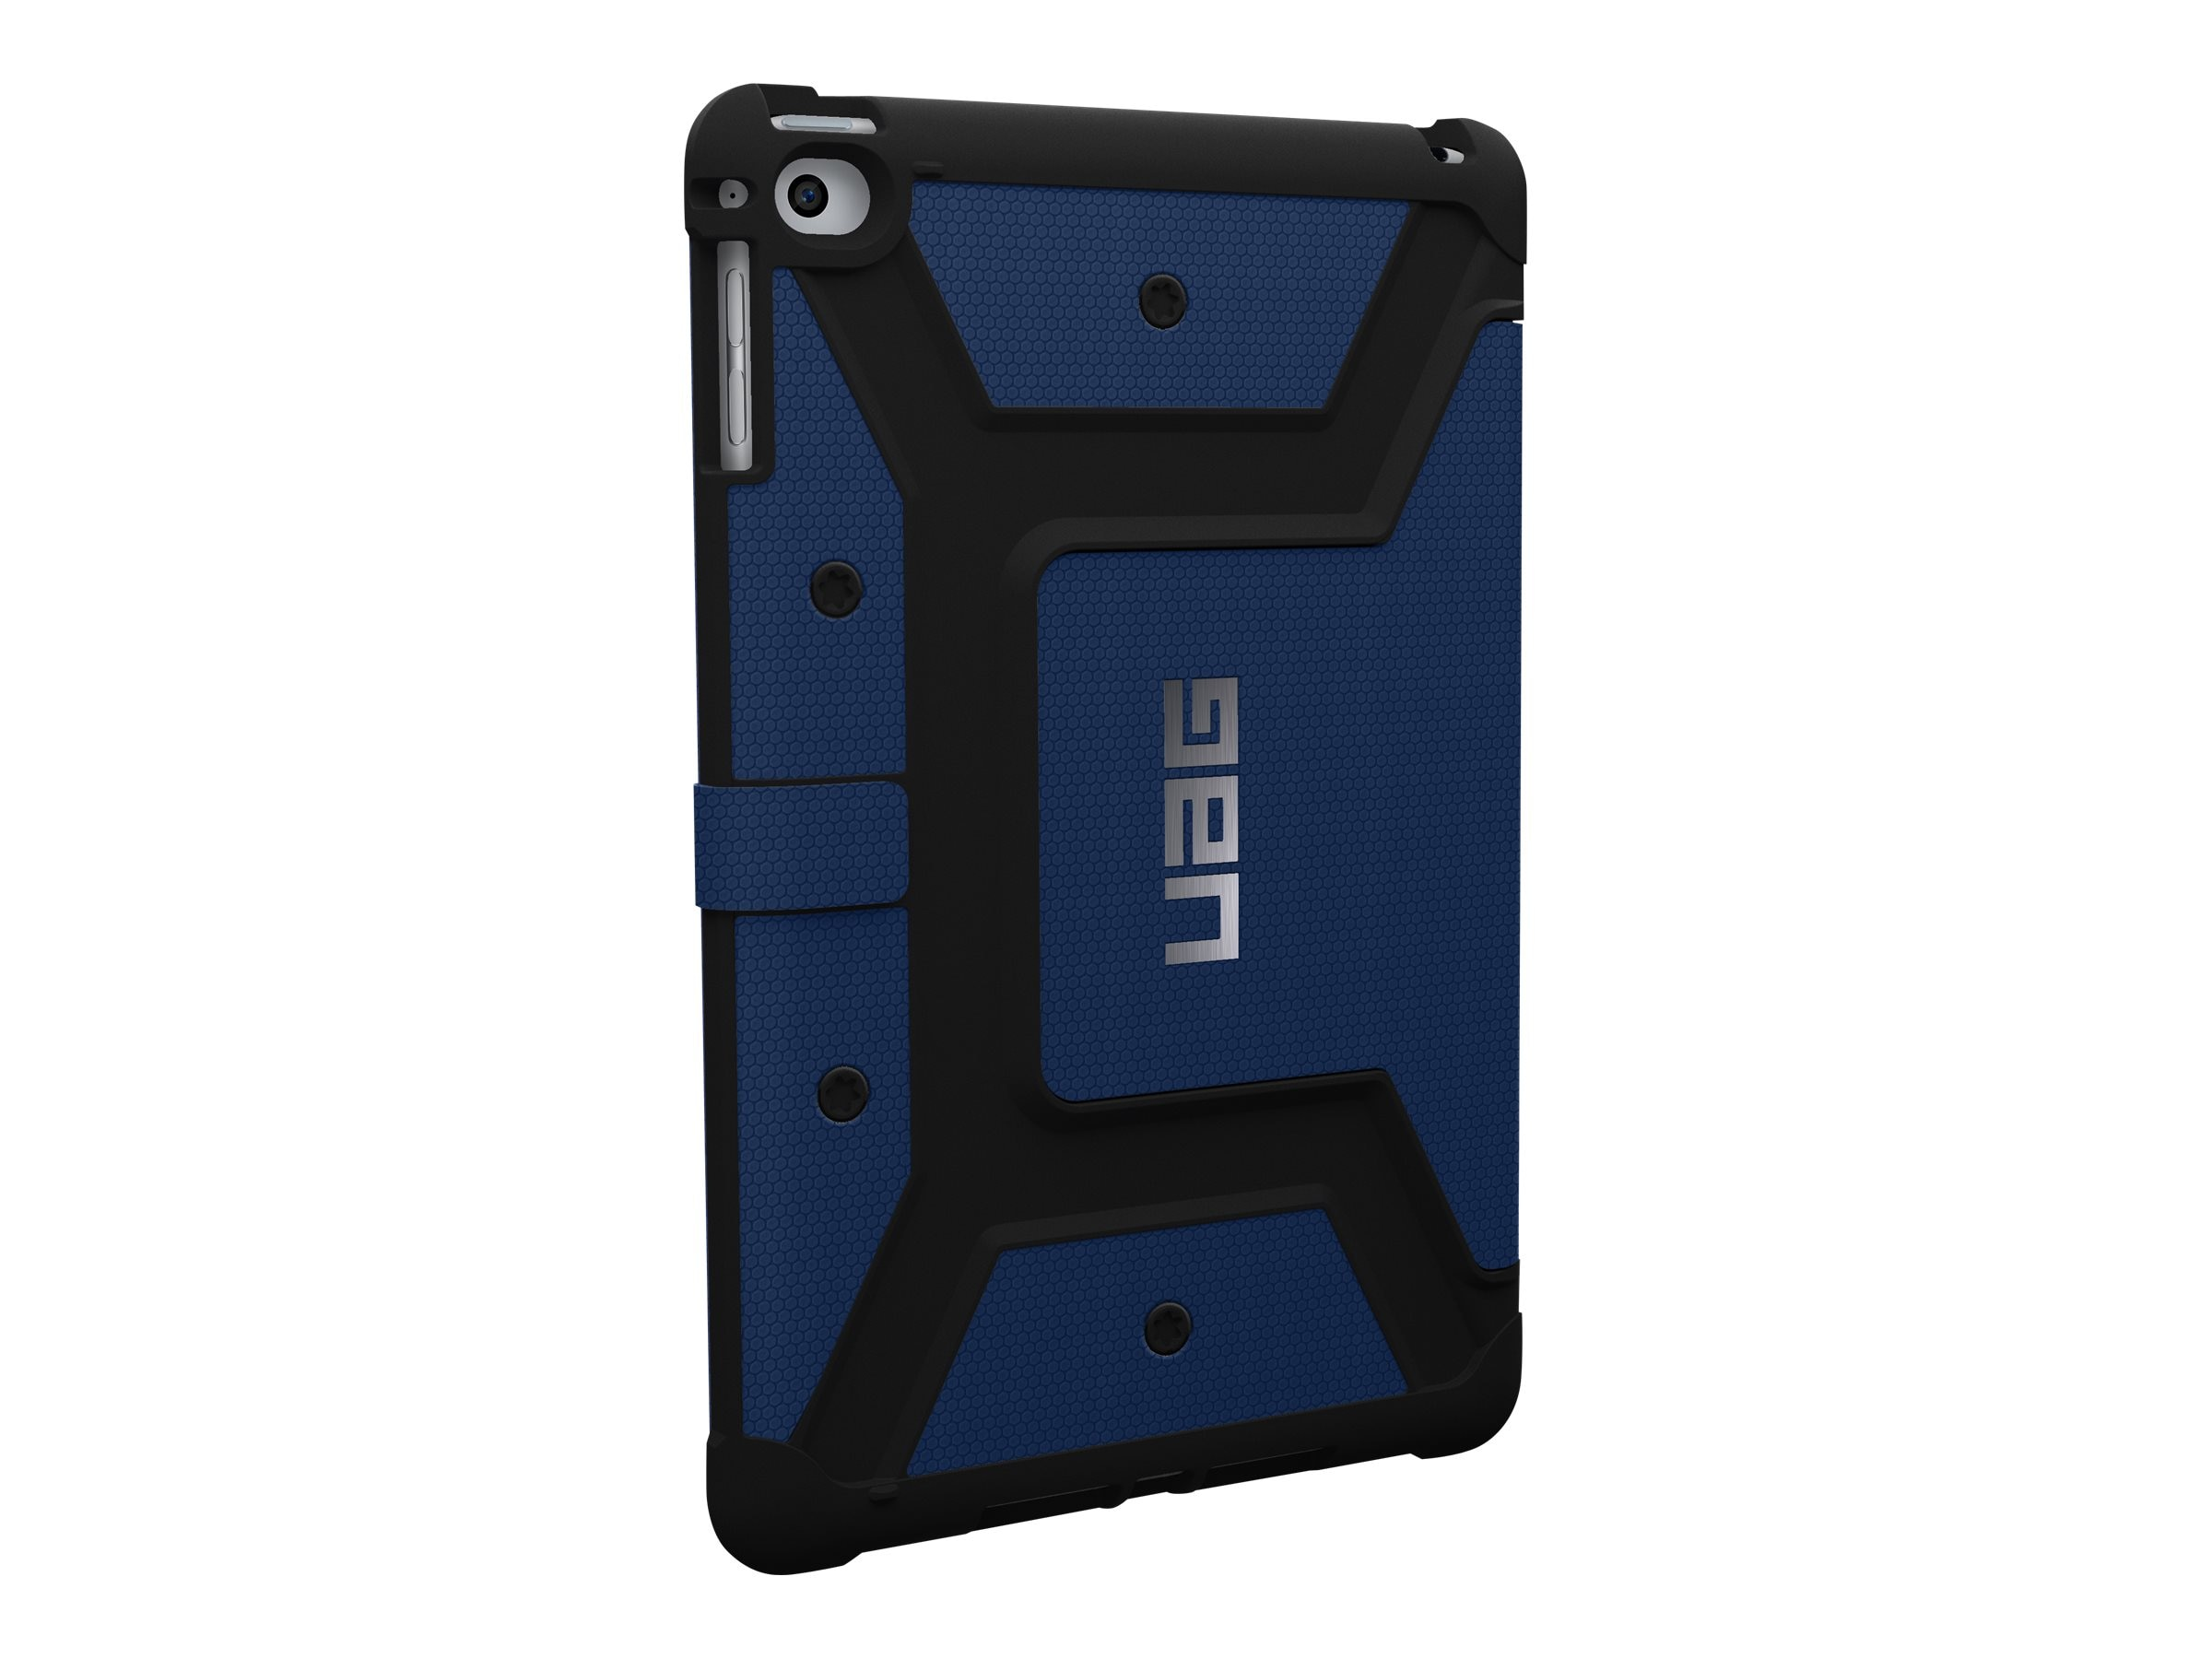 Urban Armor Folio Case for iPad mini 4 mini 4 Retina, Cobalt Black, UAG-IPDM4-CBT-VP